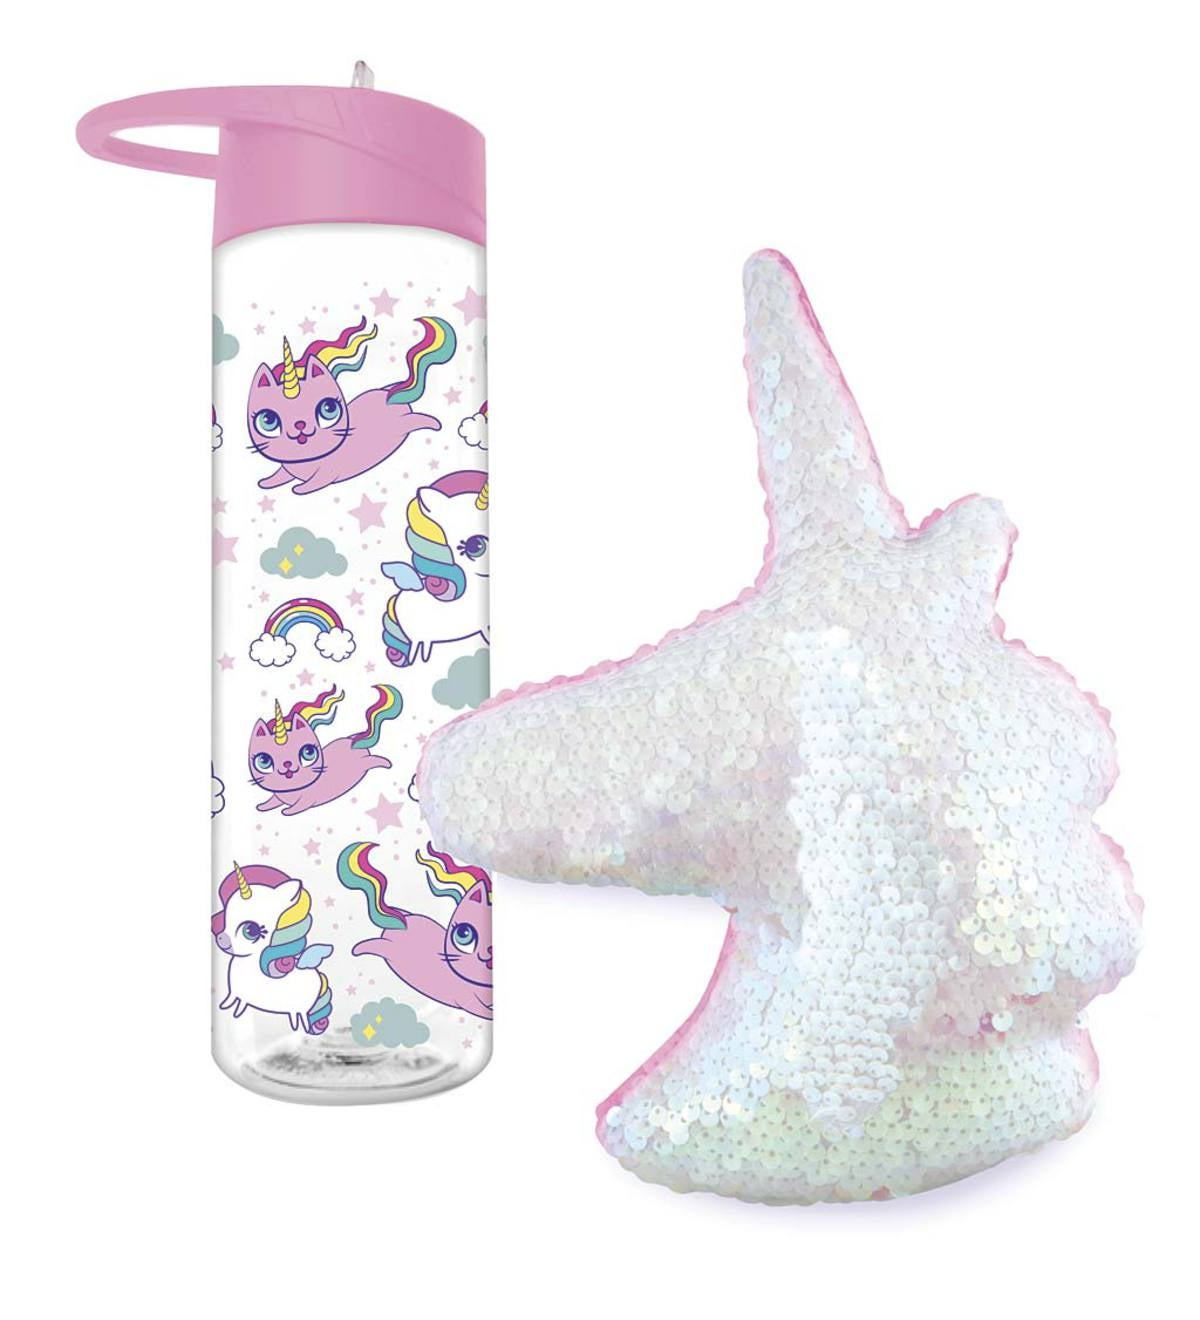 Unicorn Plush Gift Set